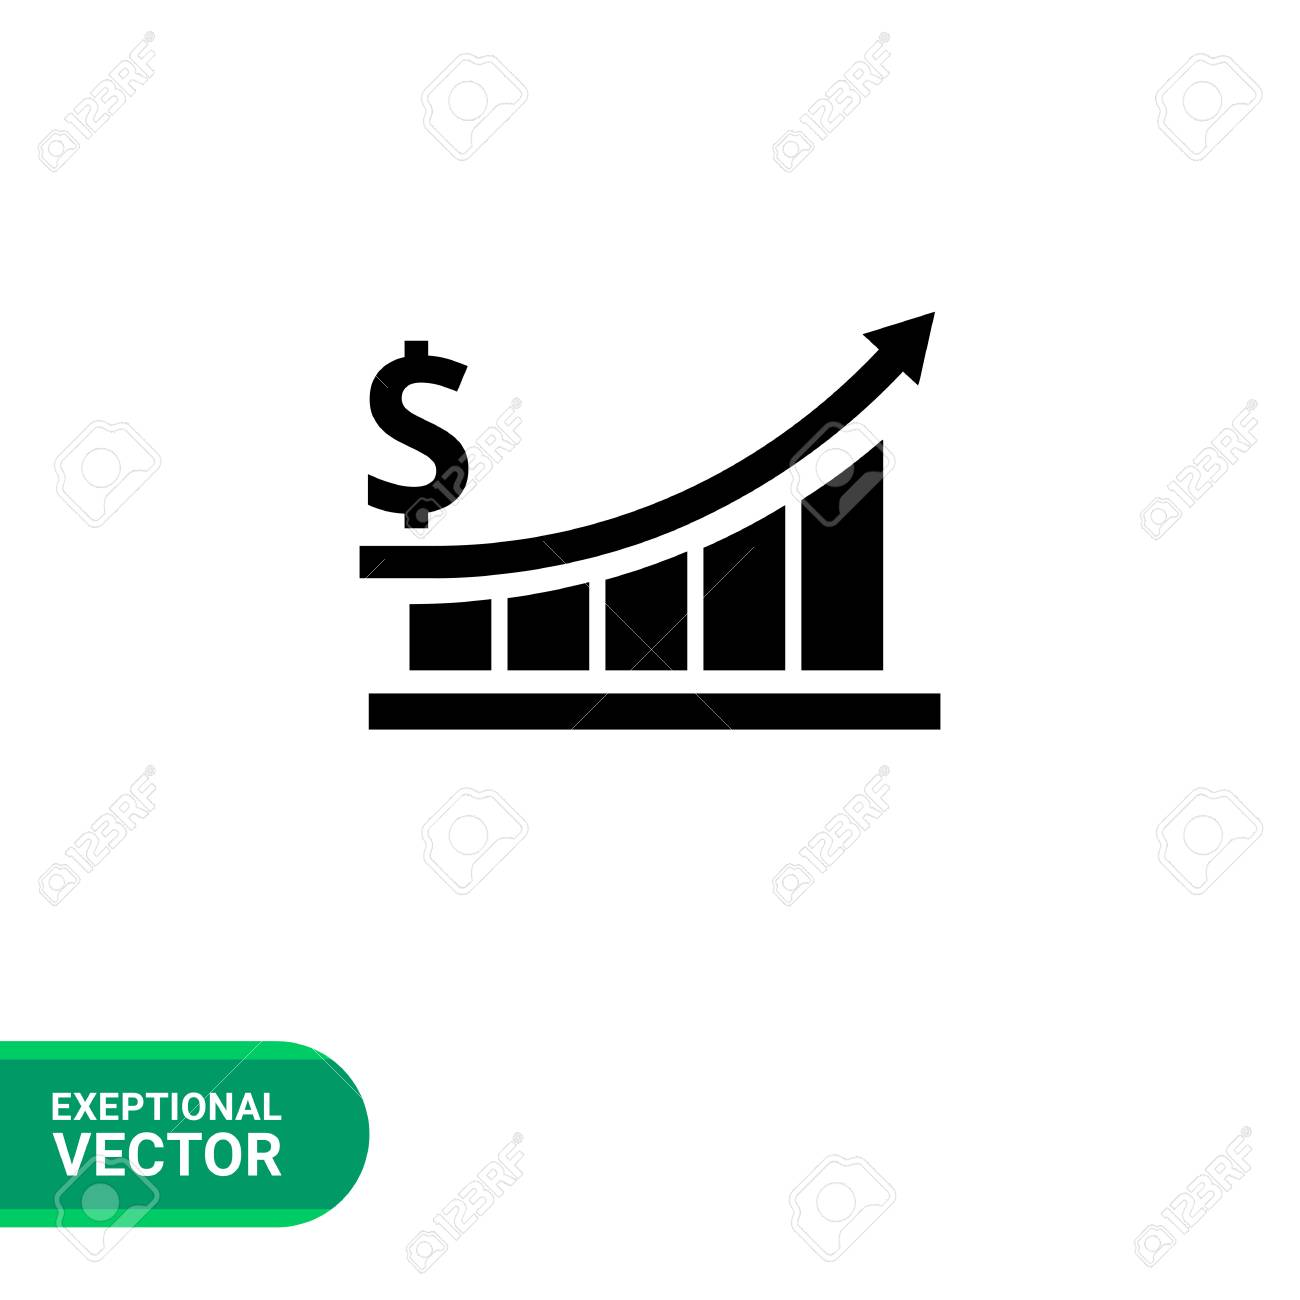 vector icon of growing bar chart with arrow and dollar sign stock